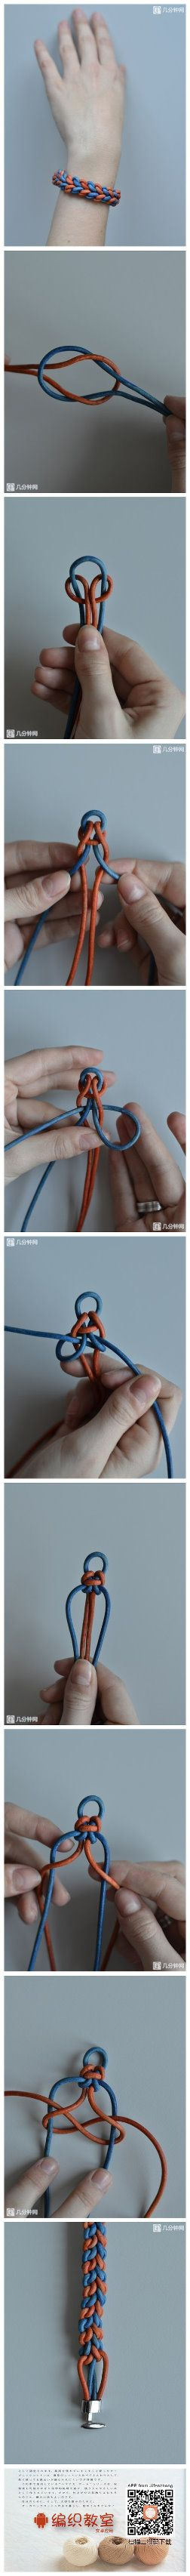 braid/ knot